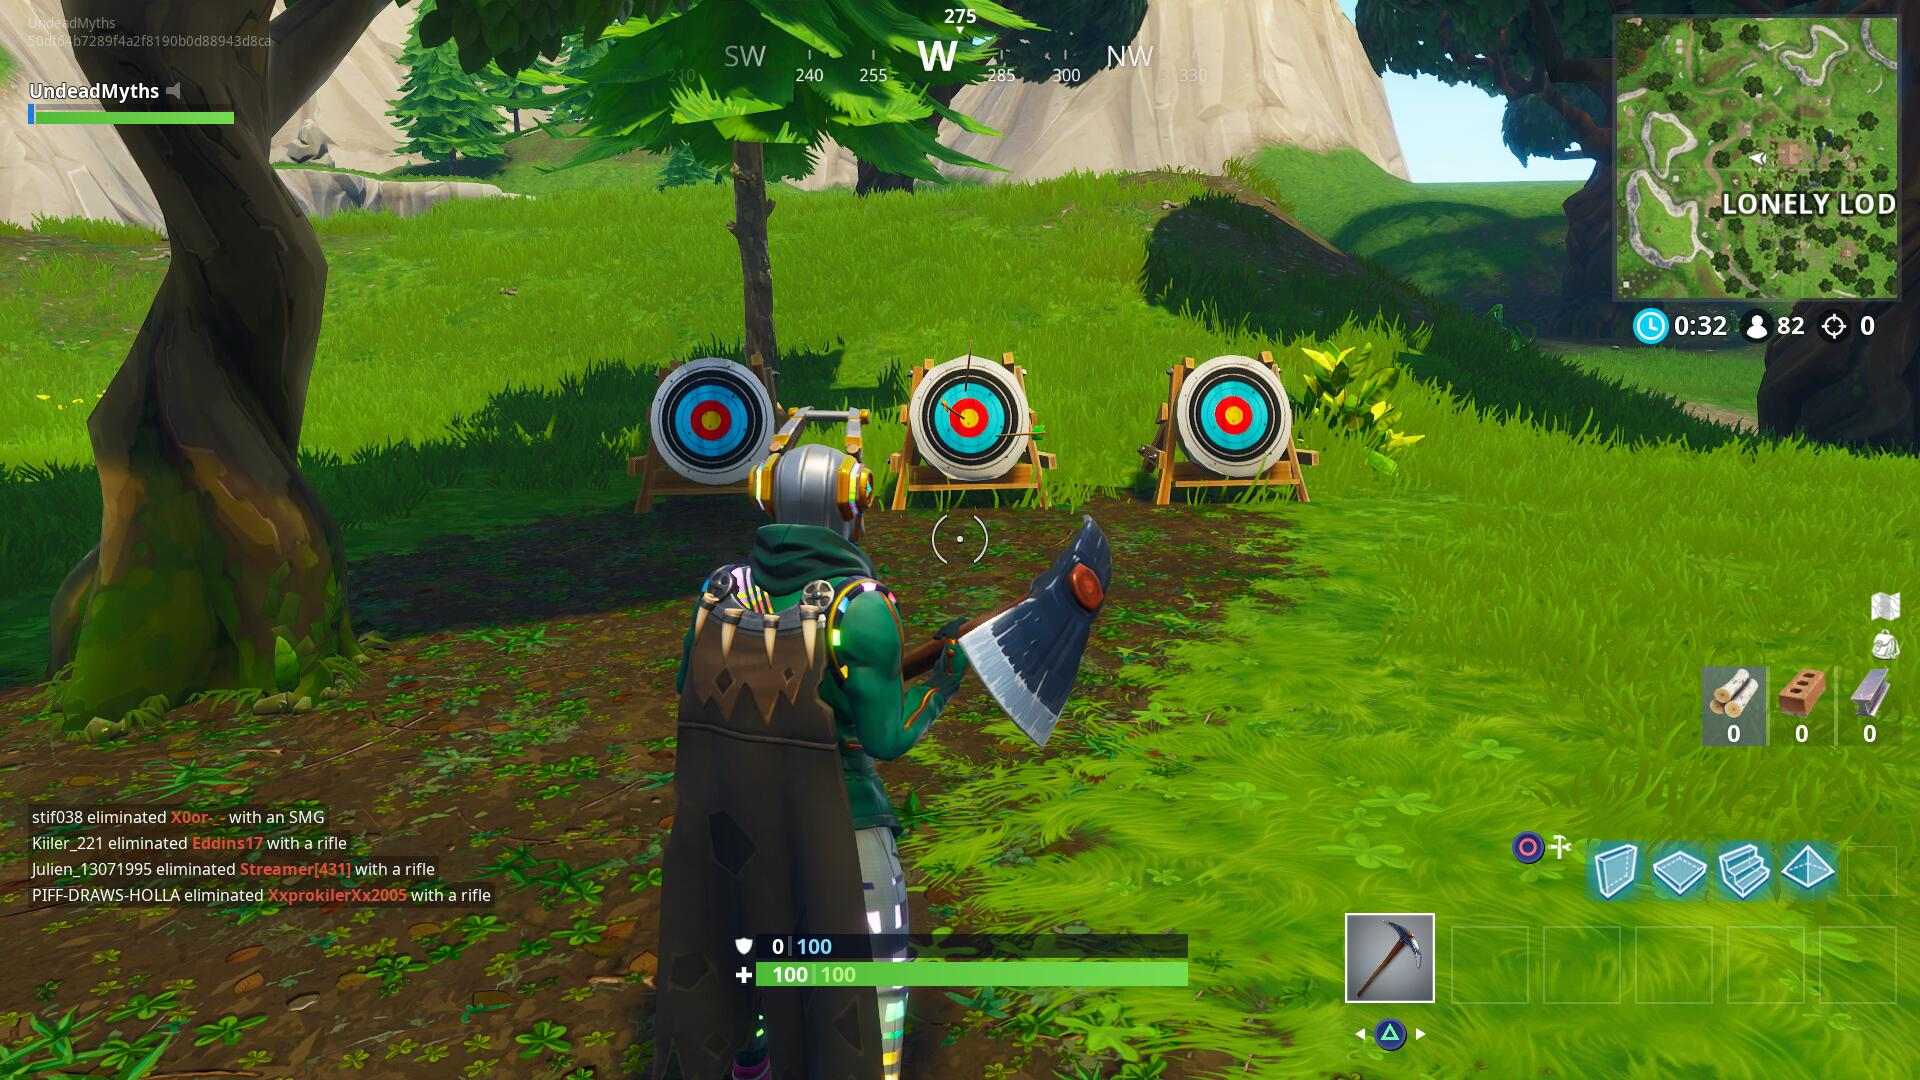 Fortnite Shooting Galleries Locations Usgamer